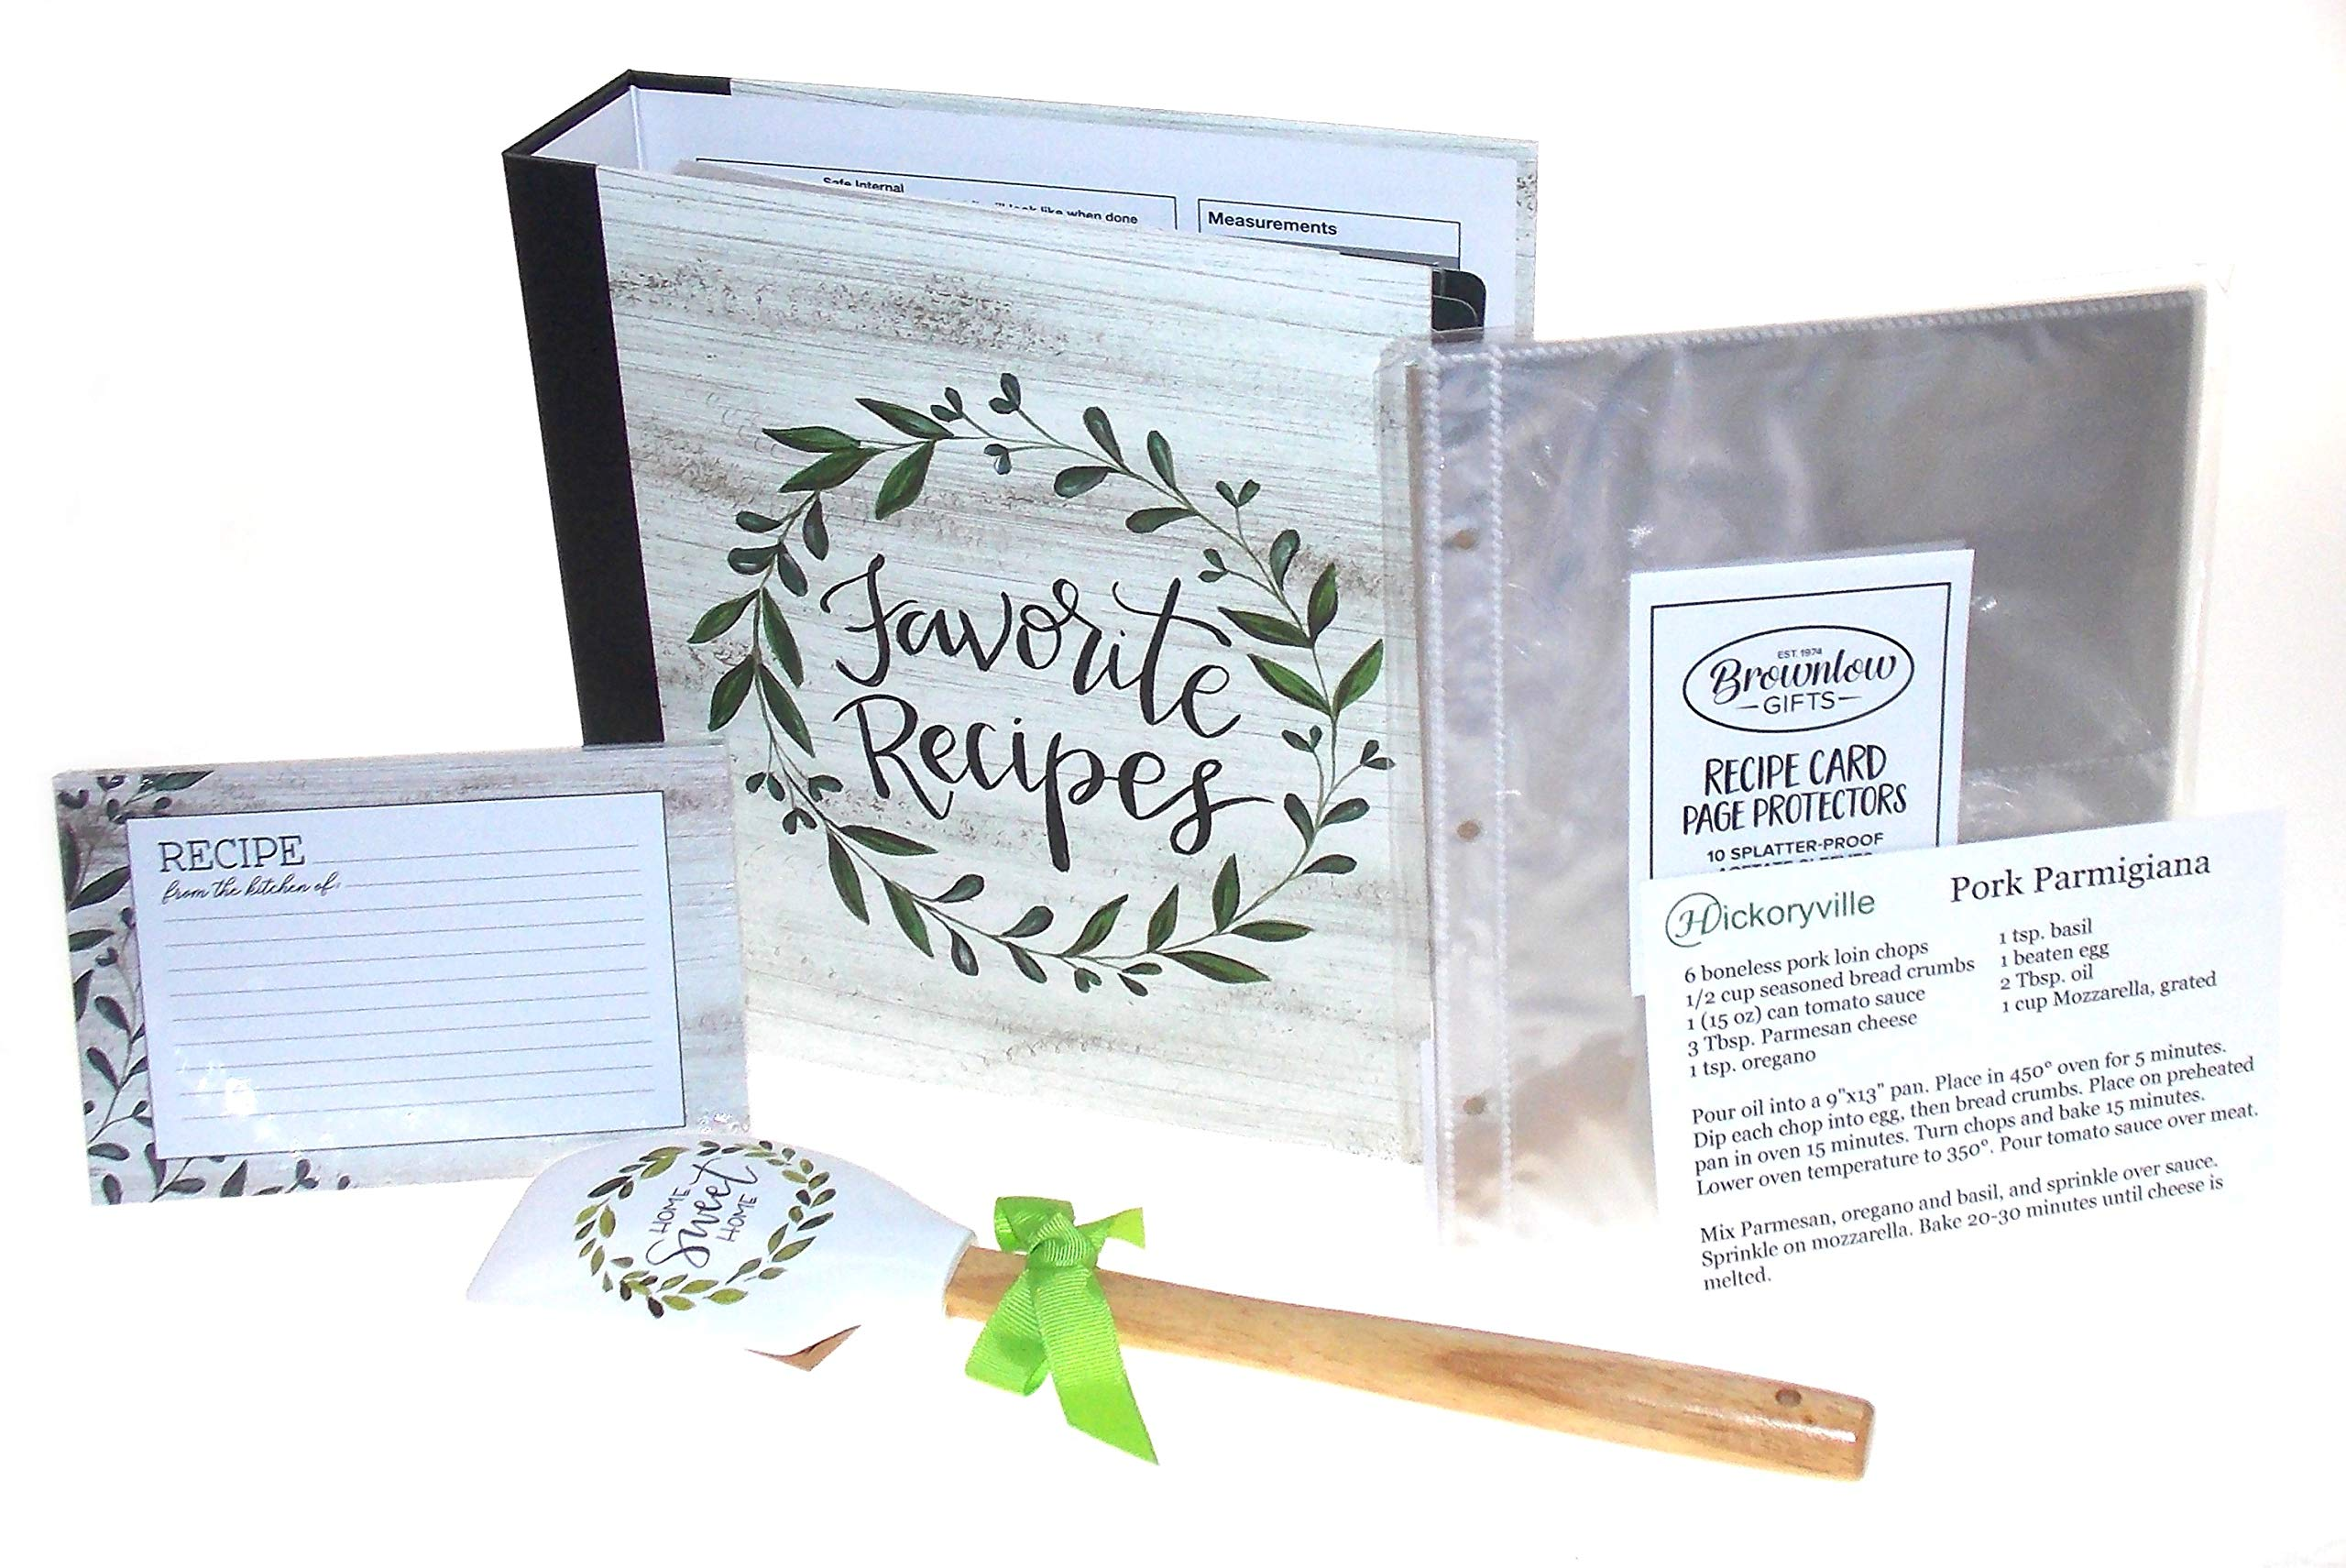 Recipe Book Bundle - Brownlow Vintage Green''Favorite Recipes'' Recipe Binder with 4 x 6 Recipe Cards, Tabbed Dividers, Extra Recipe Cards, Protector Pages, Spatula & 2 Bonus Recipes by Hickoryville by Hickoryville